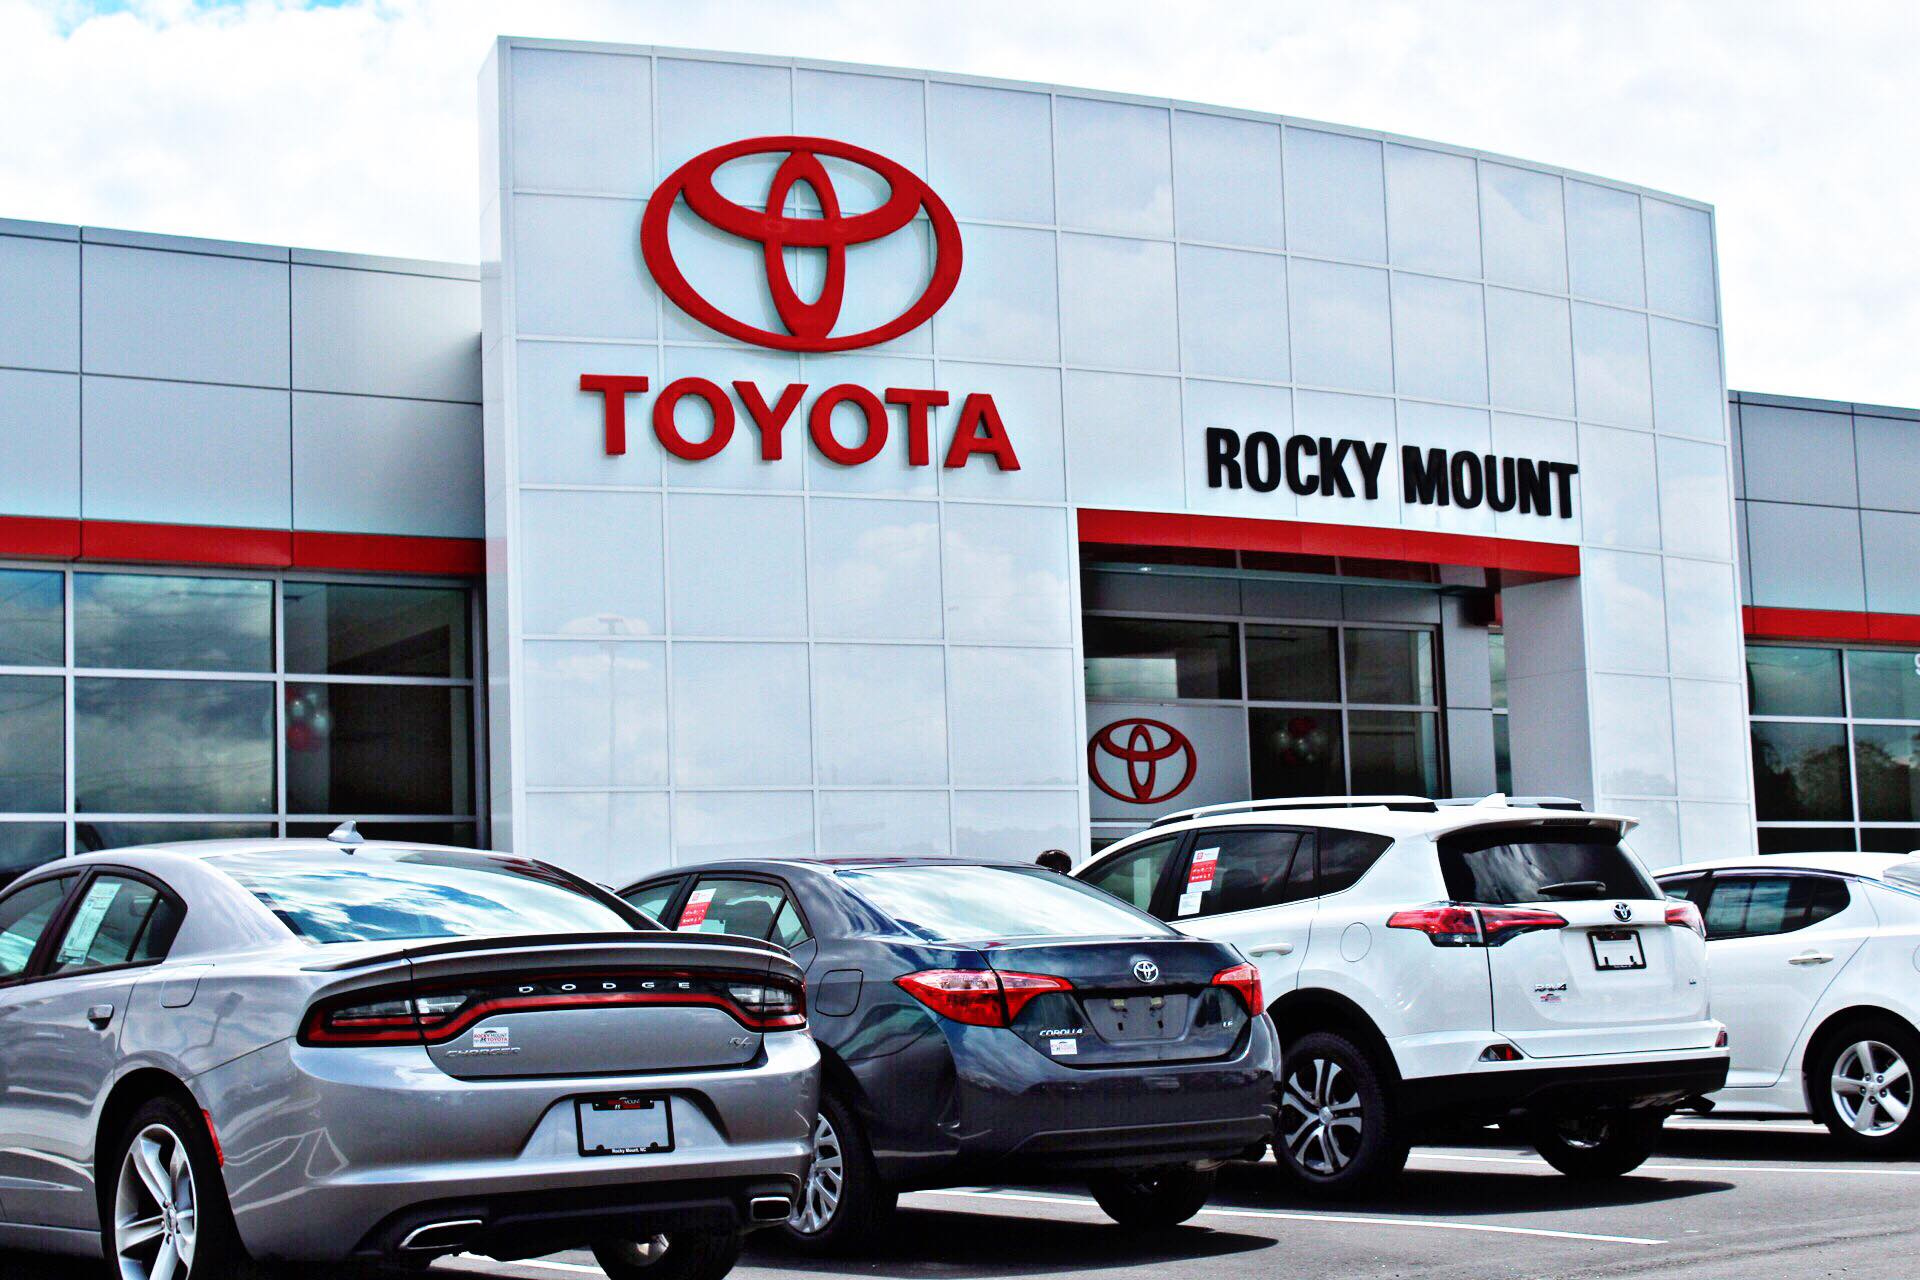 Toyota Dealerships In Nc >> Toyota Vehicle Service Rocky Mount Toyota Rocky Mount Nc